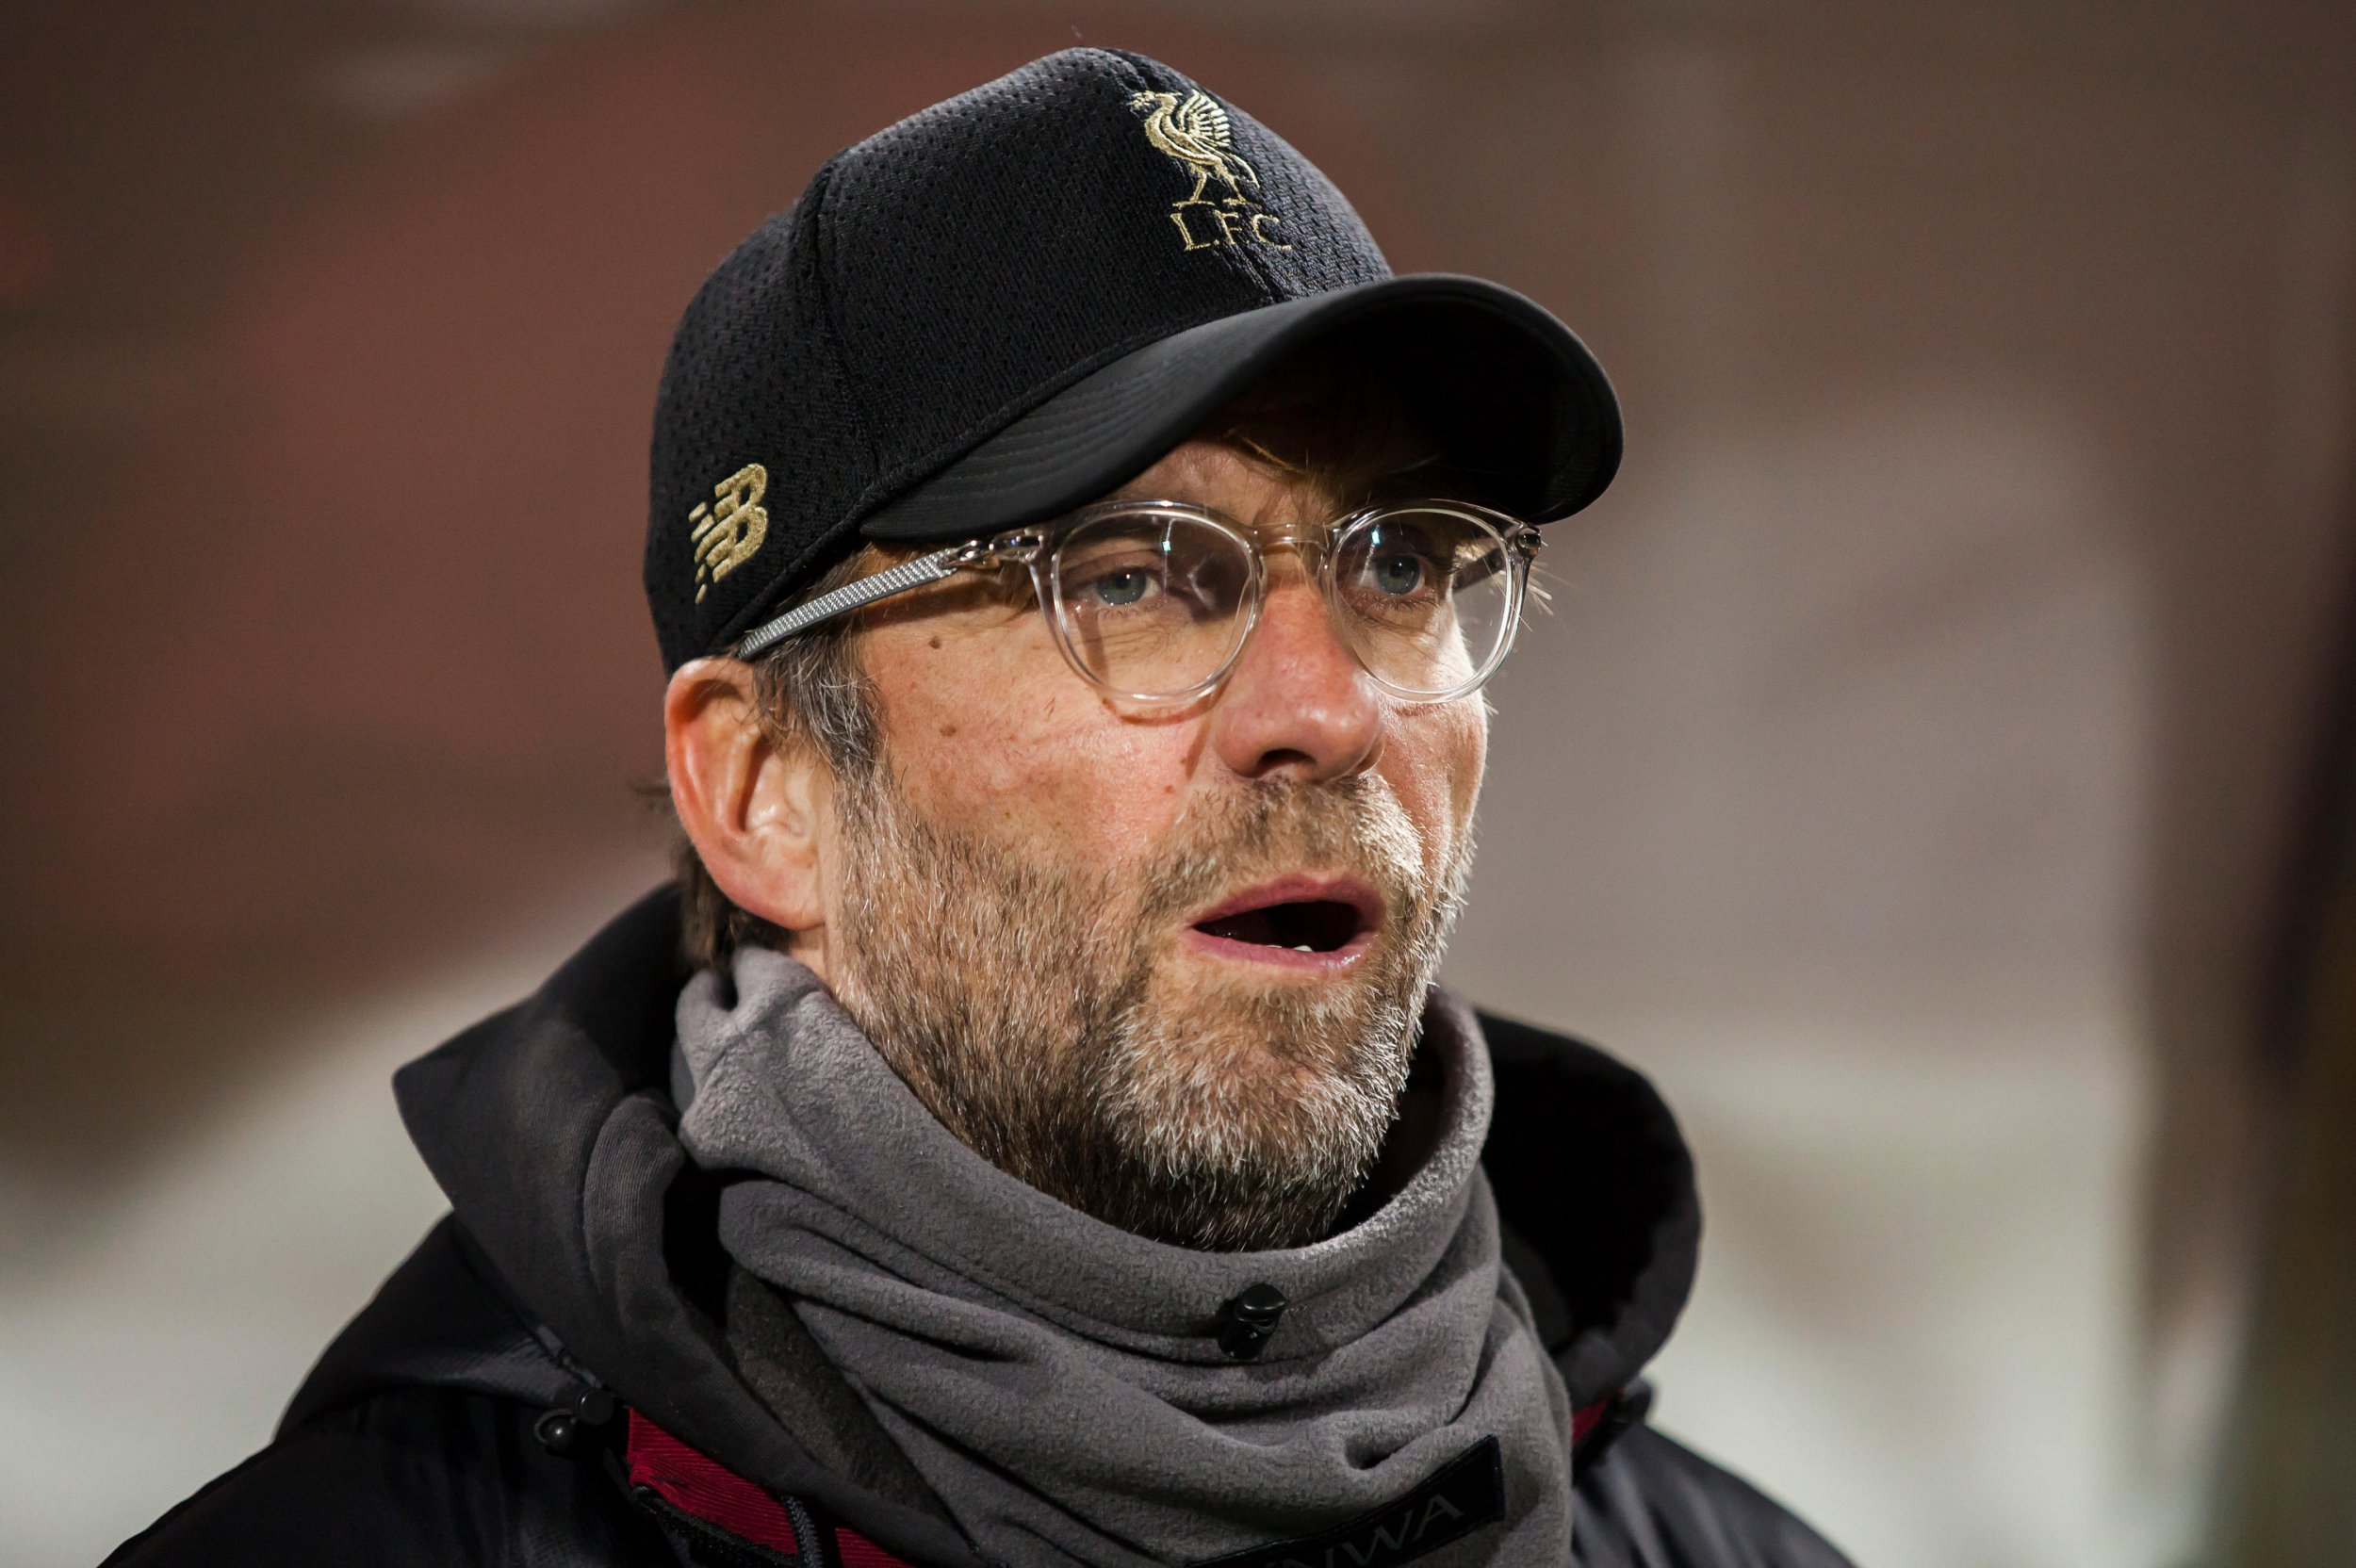 Alamy Live News. R0PF9Y FK Cukaricki Stadium, Belgrade, Serbia. 06th Nov, 2018. UEFA Champions League football,Red Star Belgrade versus Liverpool; Head Coach Jurgen Klopp of Liverpool looks frustrated as his team fall behind by 2-0 Credit: Action Plus Sports/Alamy Live News This is an Alamy Live News image and may not be part of your current Alamy deal . If you are unsure, please contact our sales team to check.